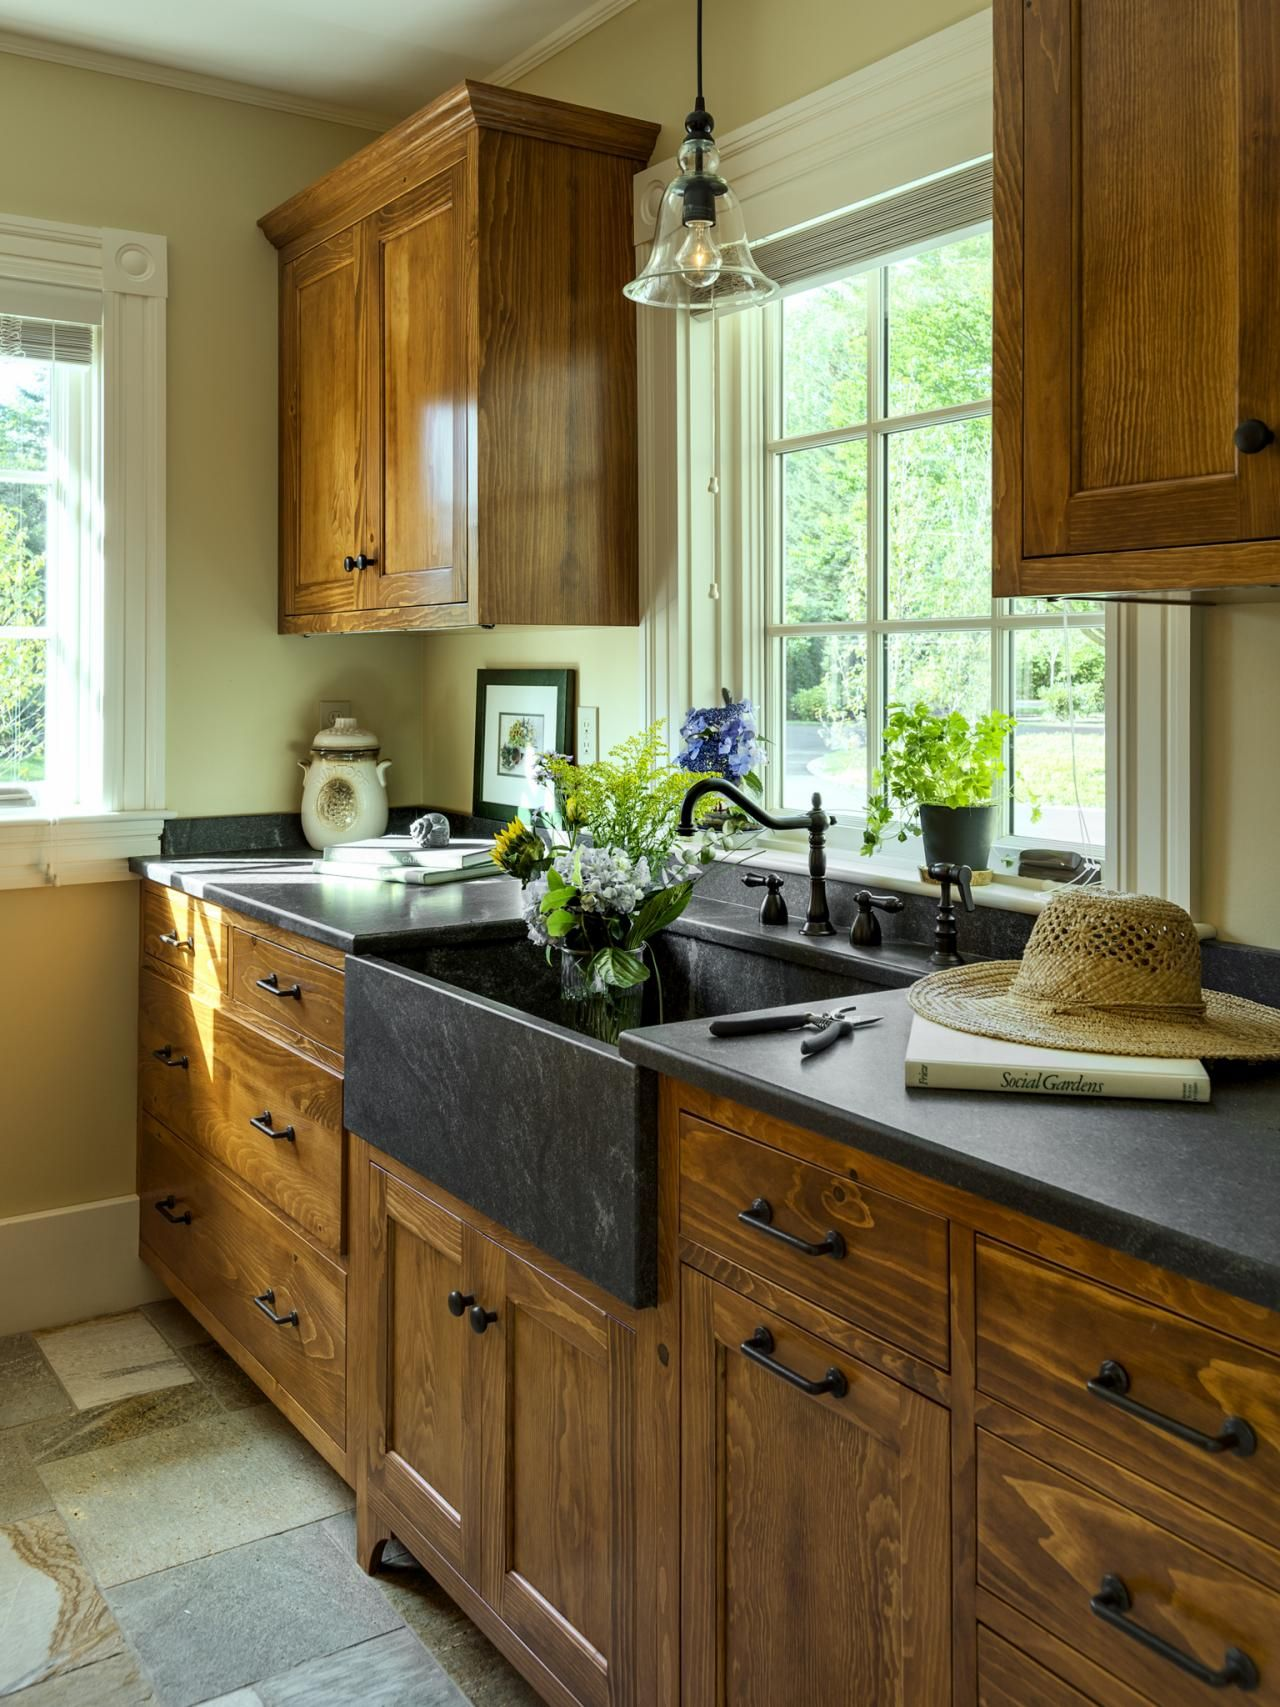 Top 50 Pinterest Gallery 2014 Hgtv Sinks And Kitchens